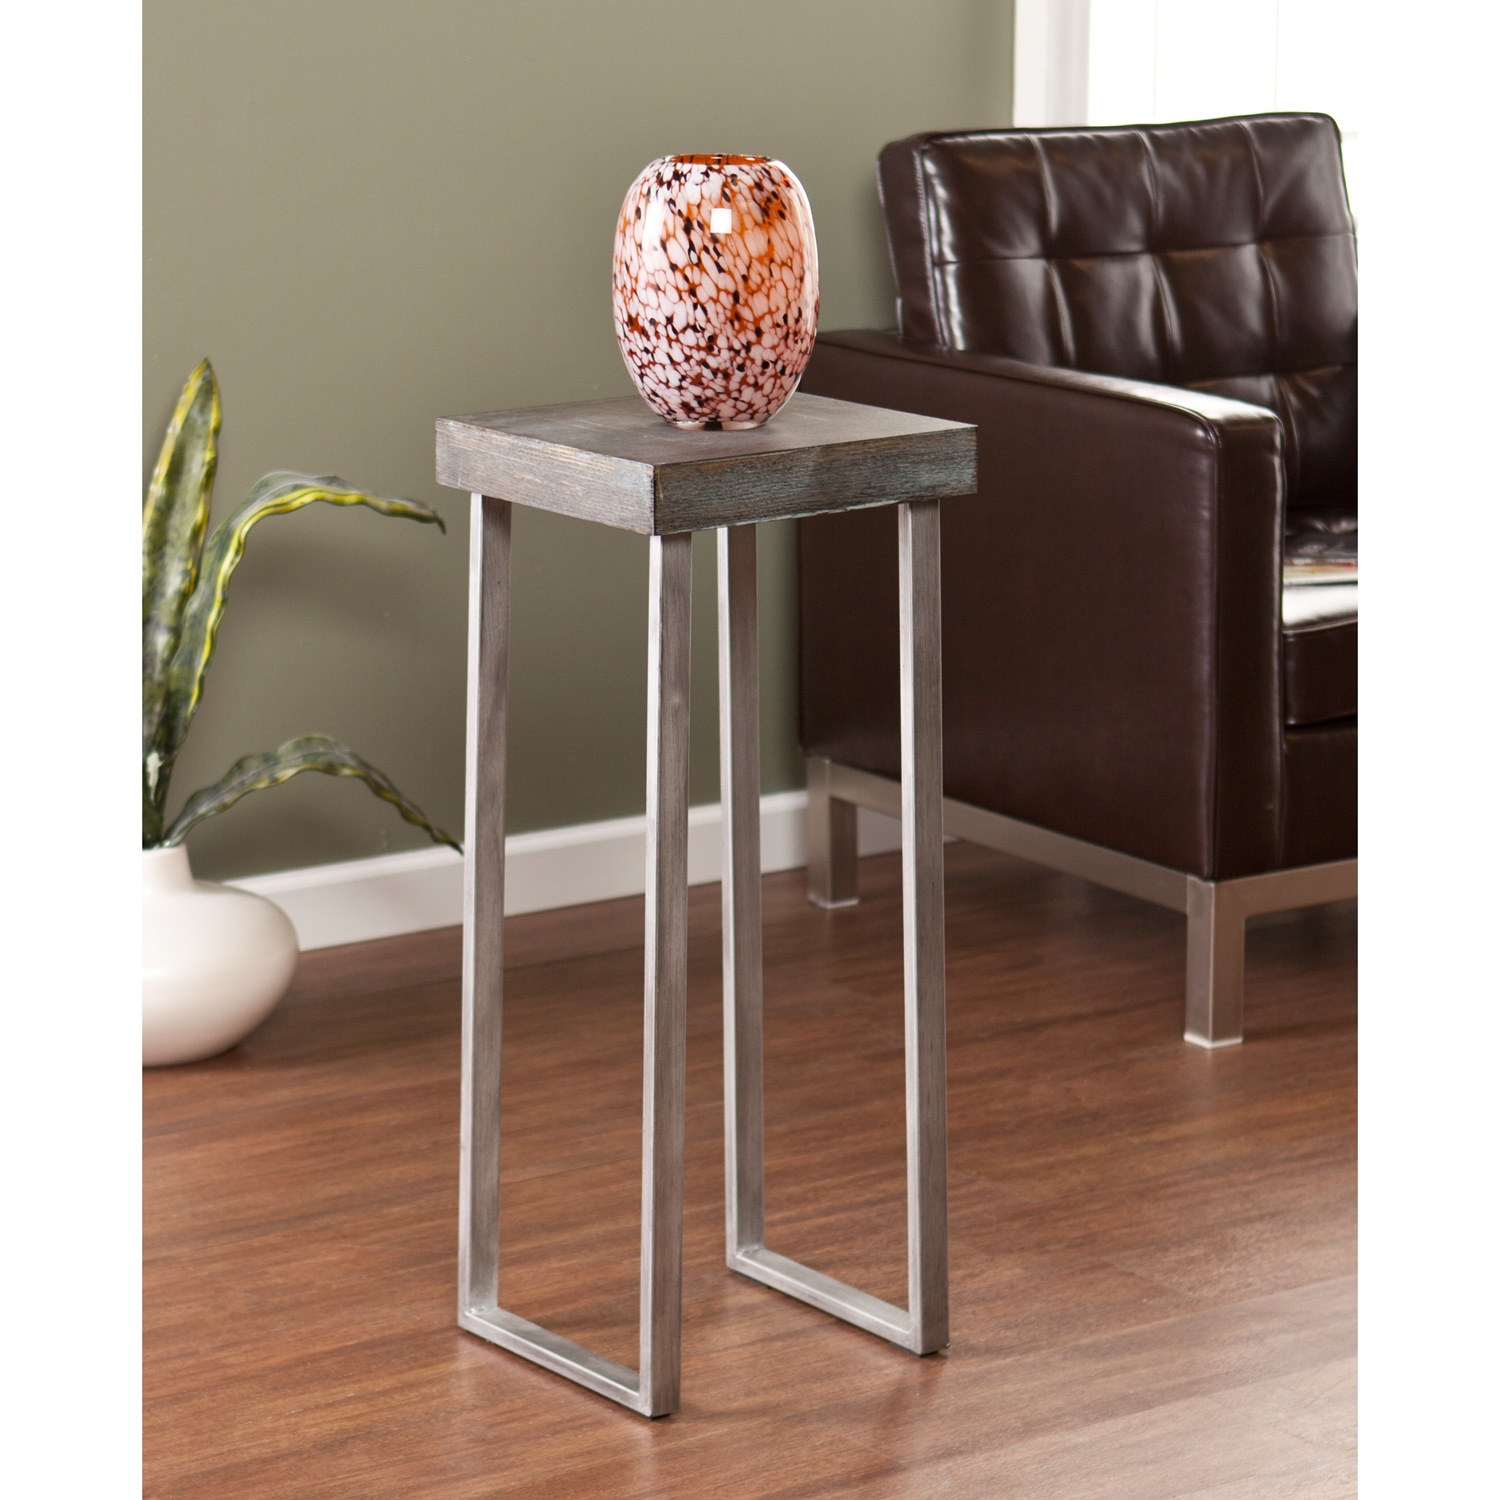 nolan pedestal accent table tables living room marble and chrome side cool floor lamps kitchen light fixtures coffee bases for granite tops modern top wrought iron with glass